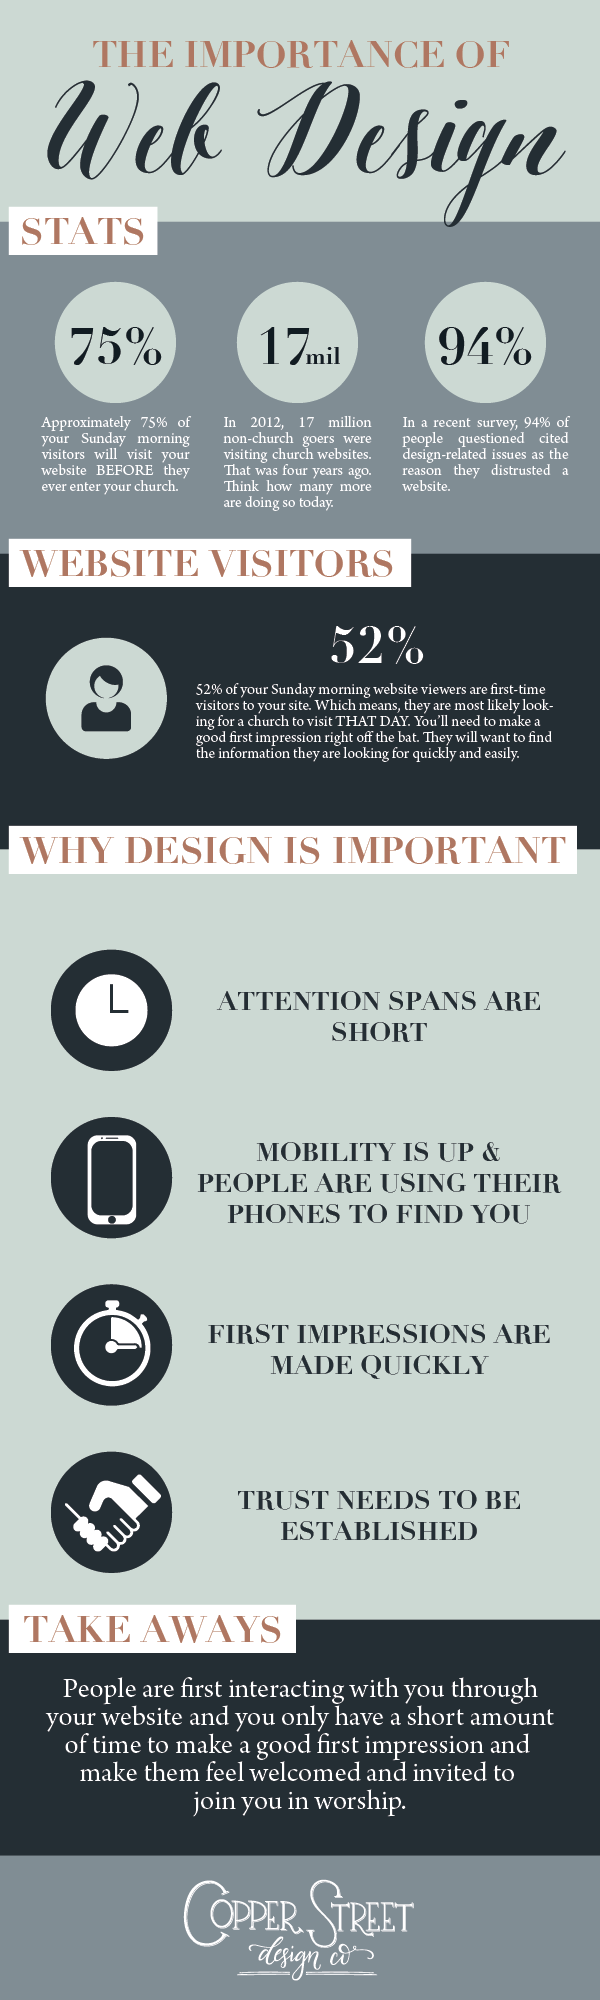 Importance of Web Design Infographic